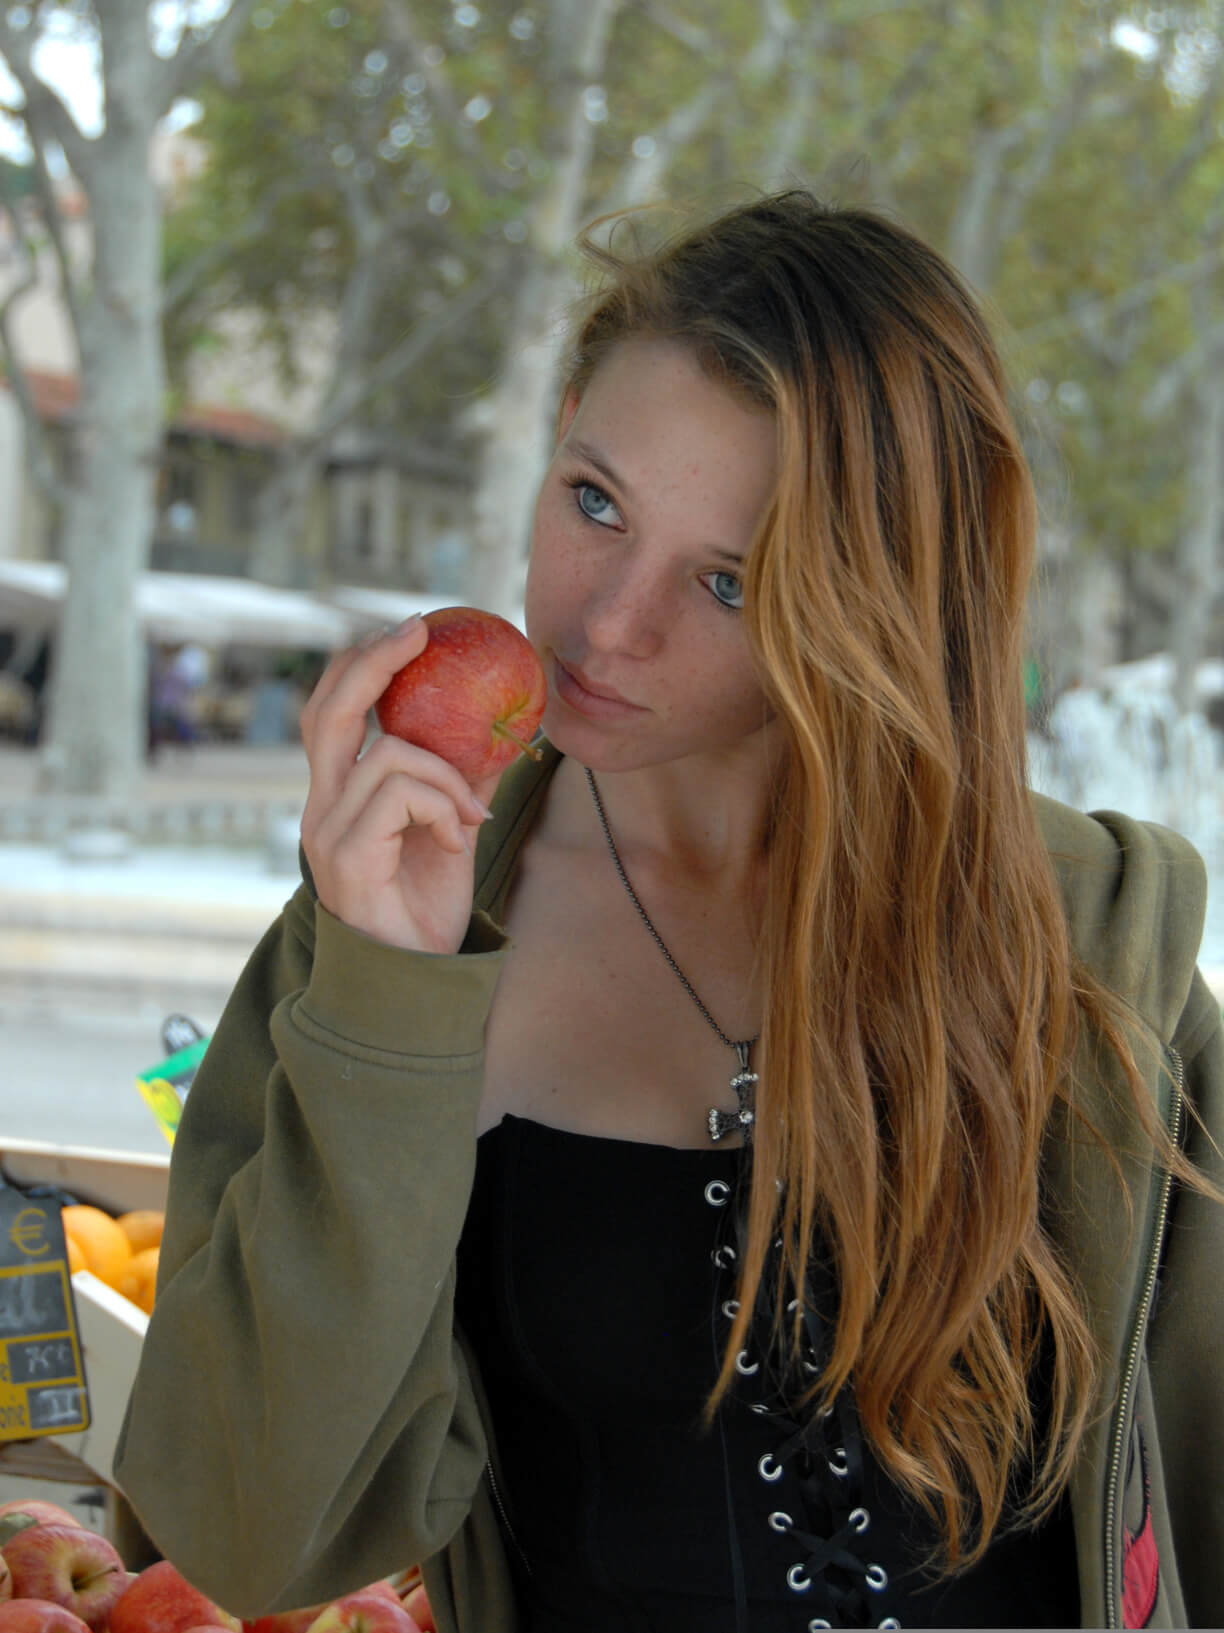 teenager and red apple